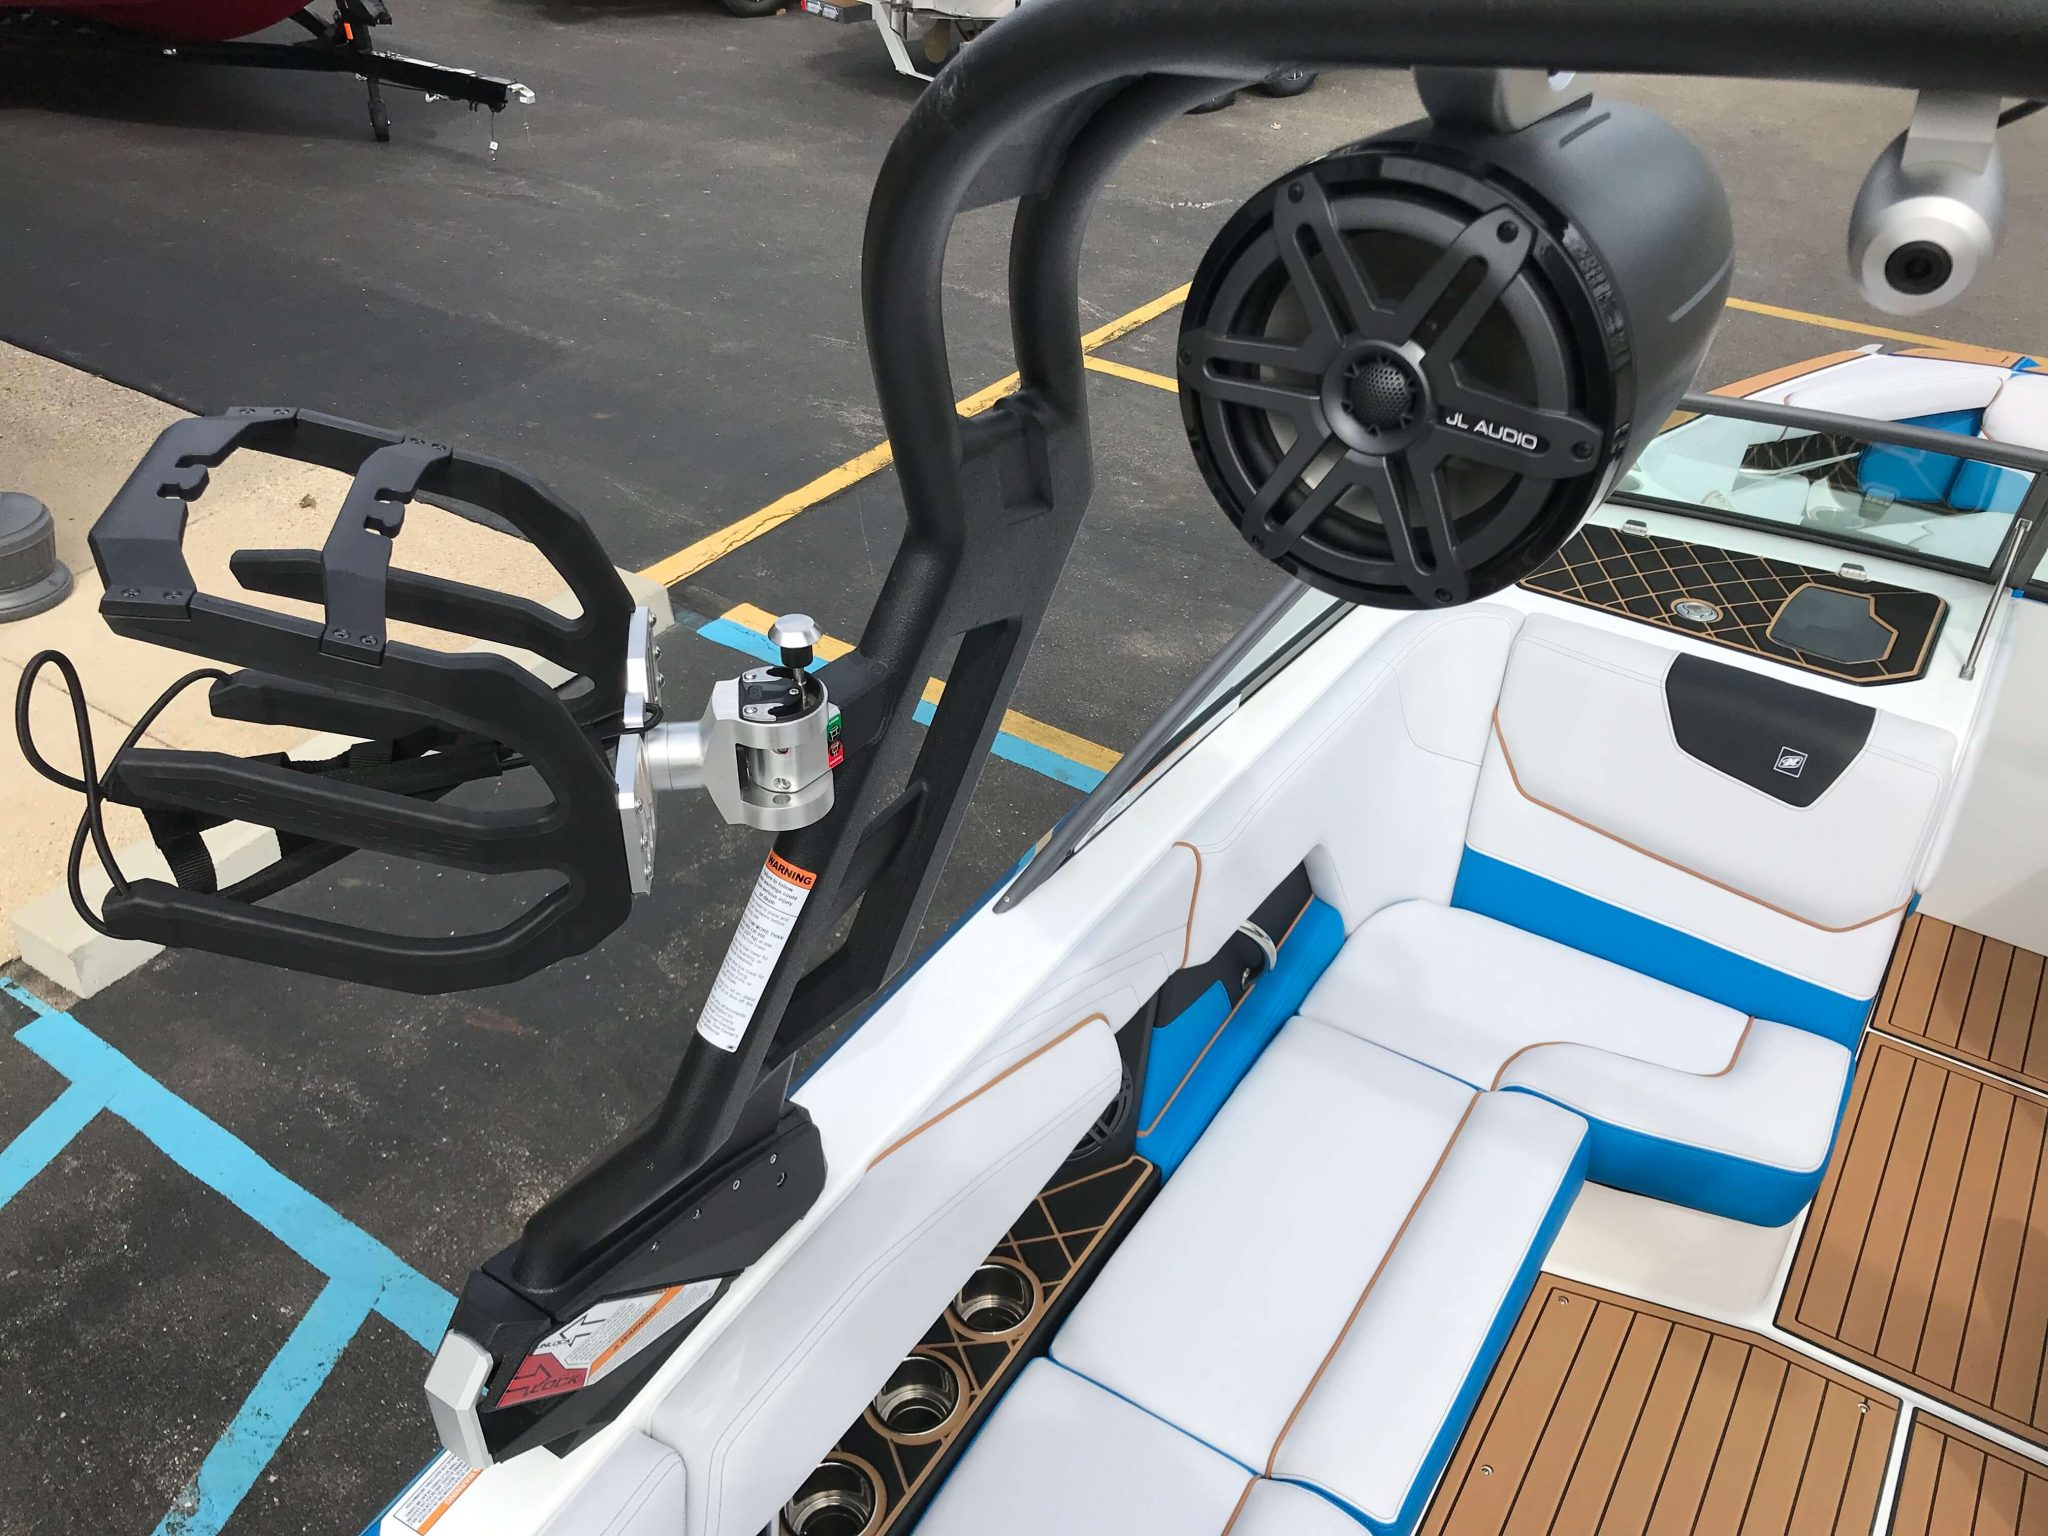 2019 Nautique GS20 Tower Speakers And Board Racks